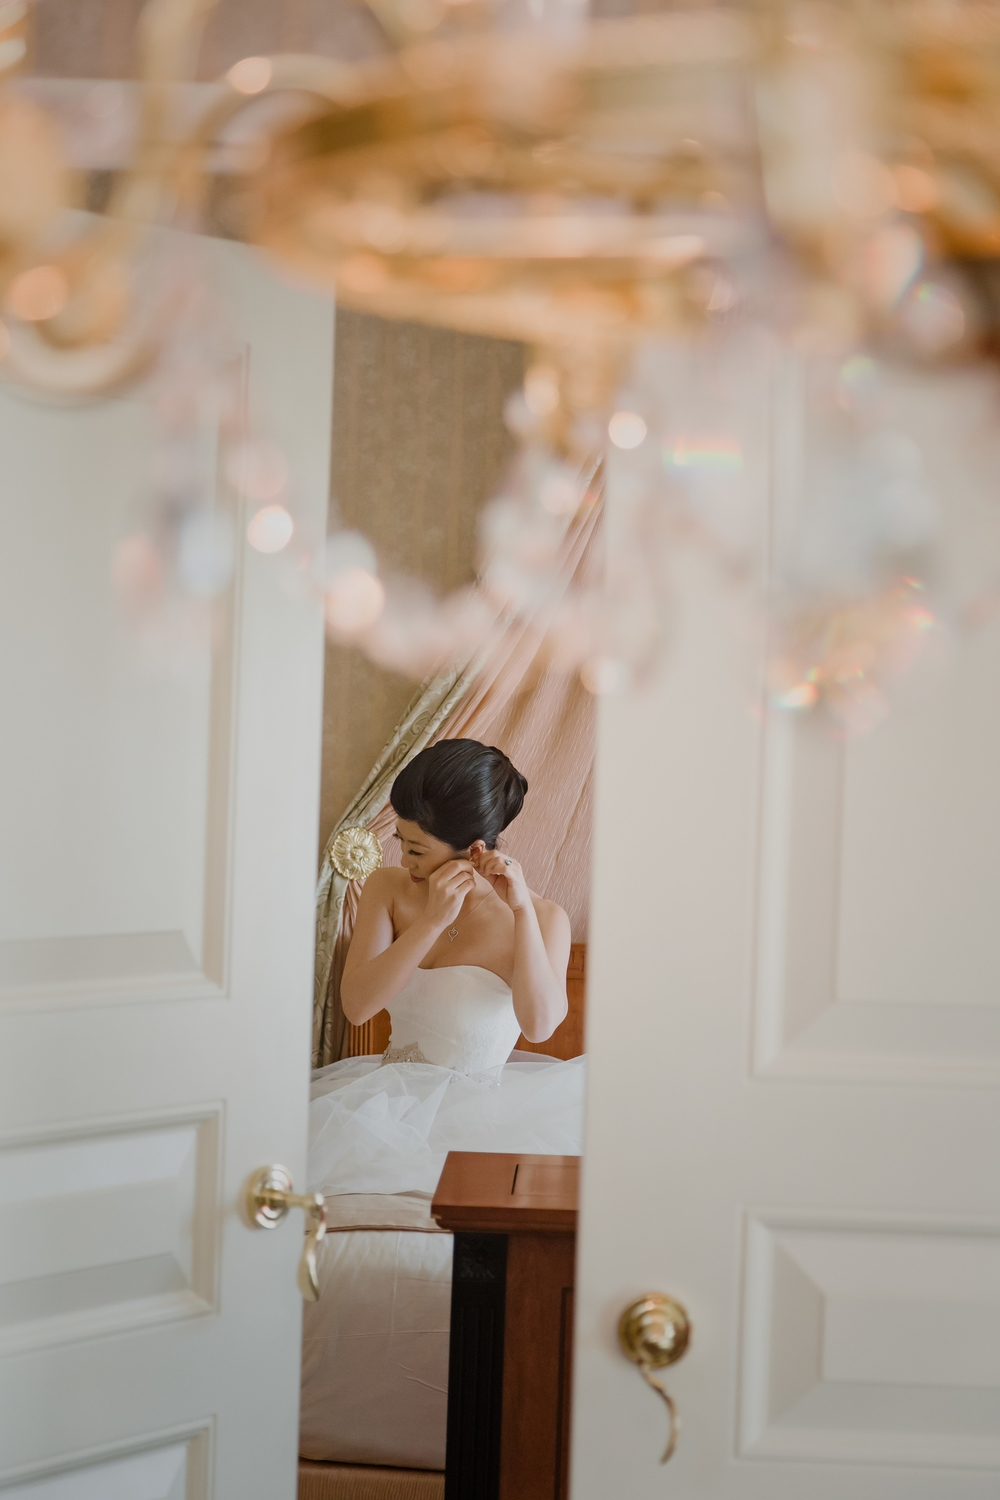 Putting on the wedding jewelry and finishing touches.  Vendor Credit:  Venue: Paris Hotel Las Vegas and Chateau | Las Vegas Wedding Planner Andrea Eppolito | Photo: Adam Frazier Photography | Decor: Naakiti Floral | Beauty: Make Up in the 702